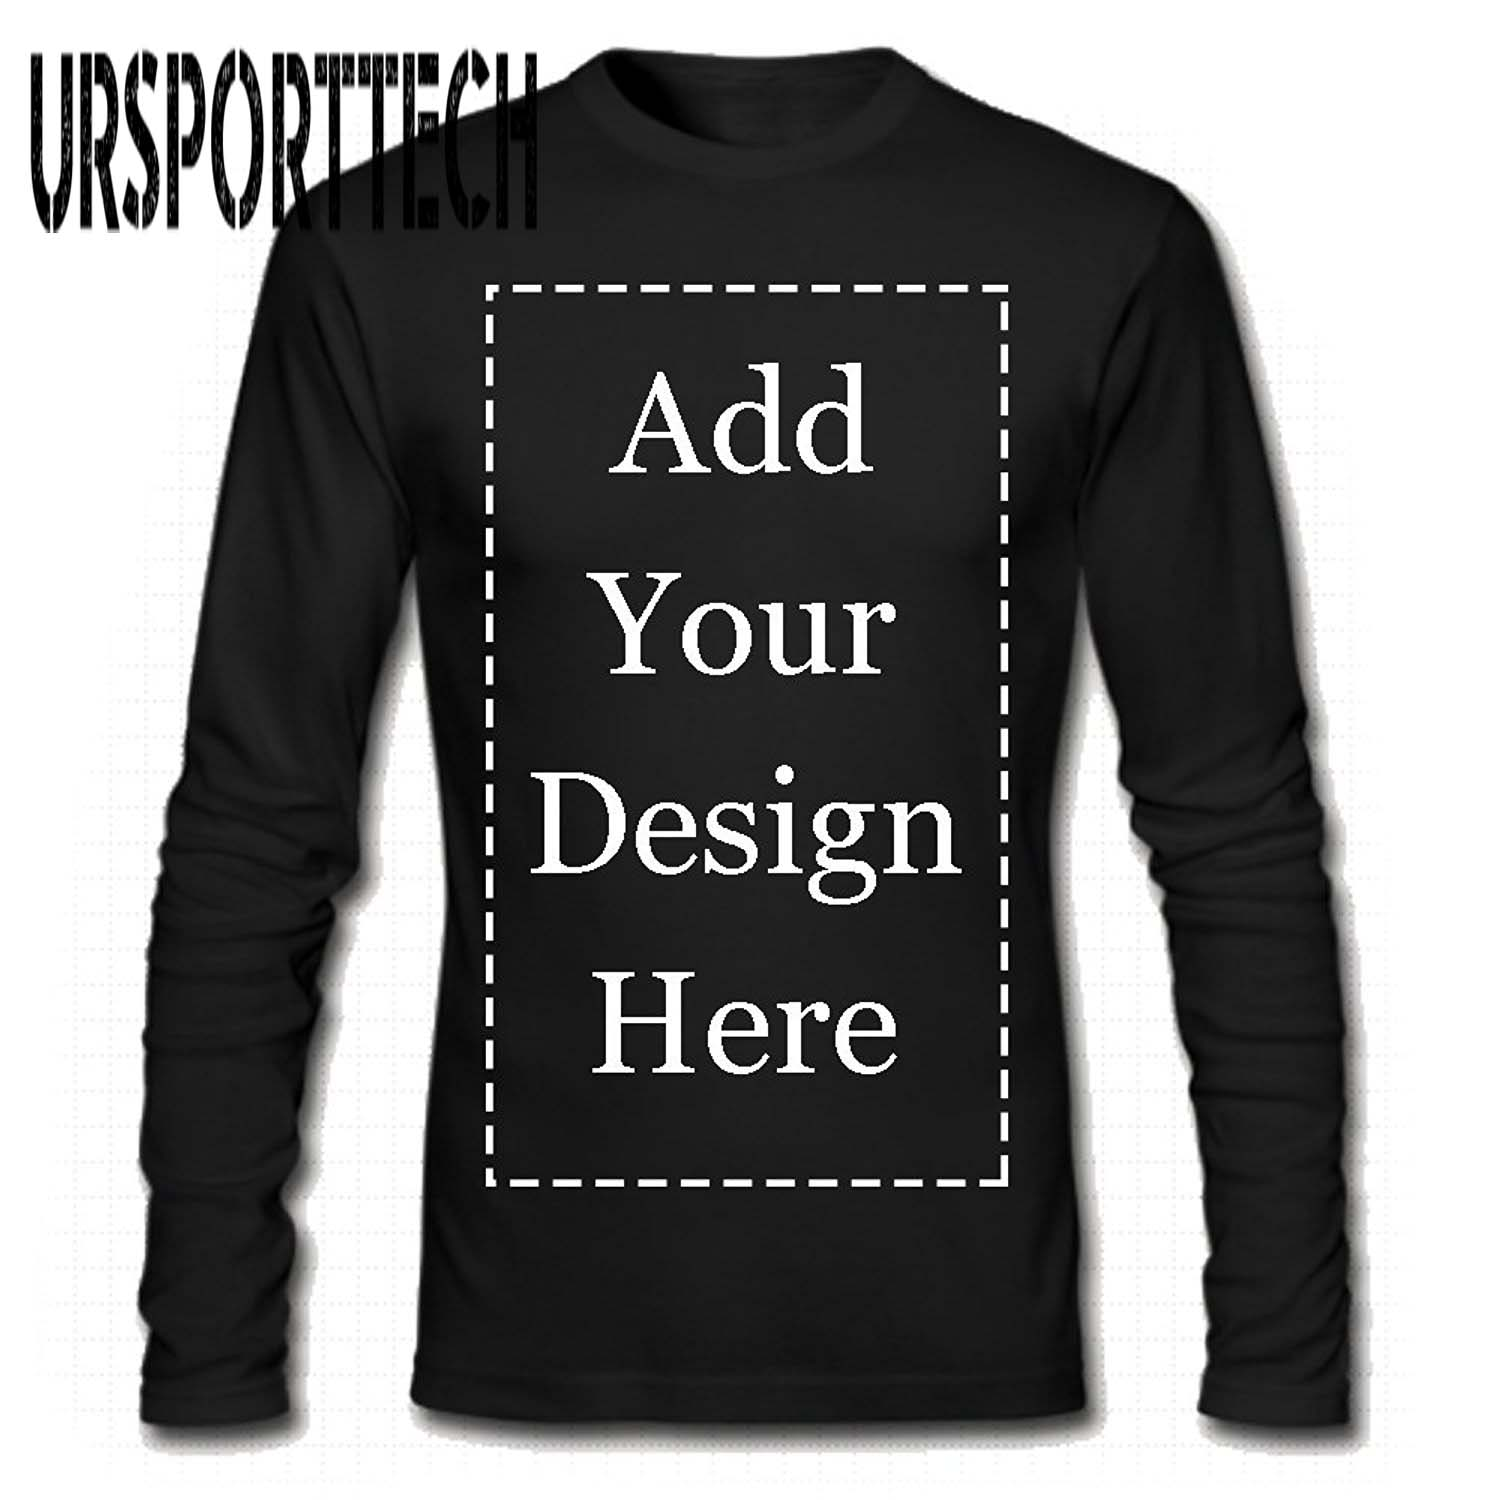 URSPORTTECH Brand Custom Men Long Sleeve T-Shirt Add Your Own Text Picture On Your Personalized Customized Tee